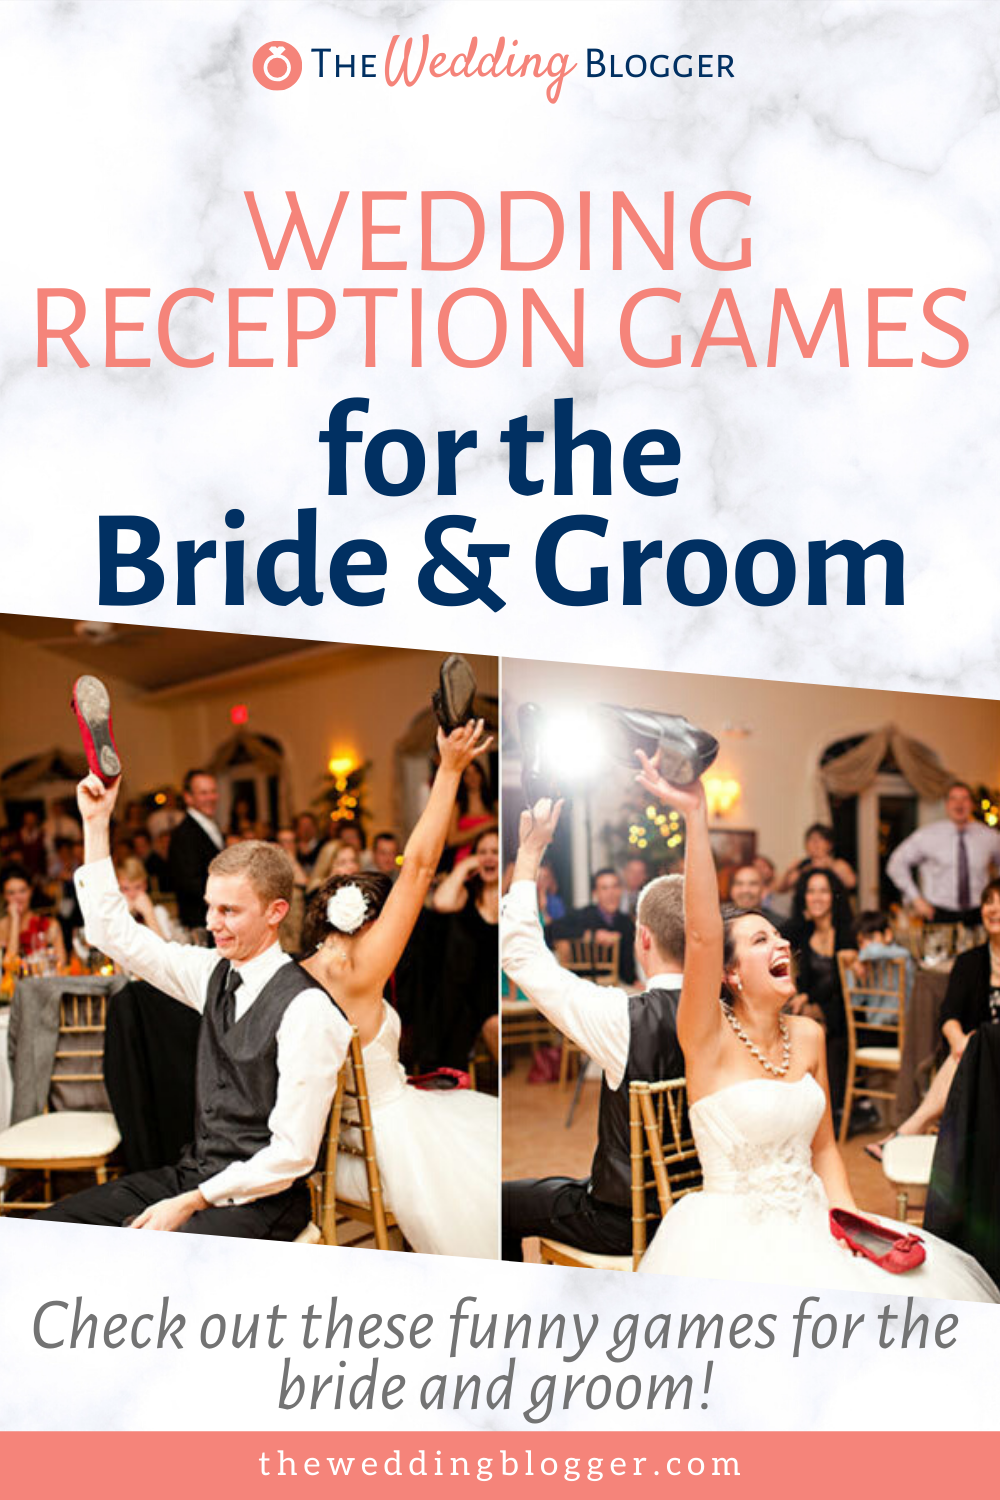 Funny Wedding Reception Games for the Bride and Groom - The Wedding Blogger